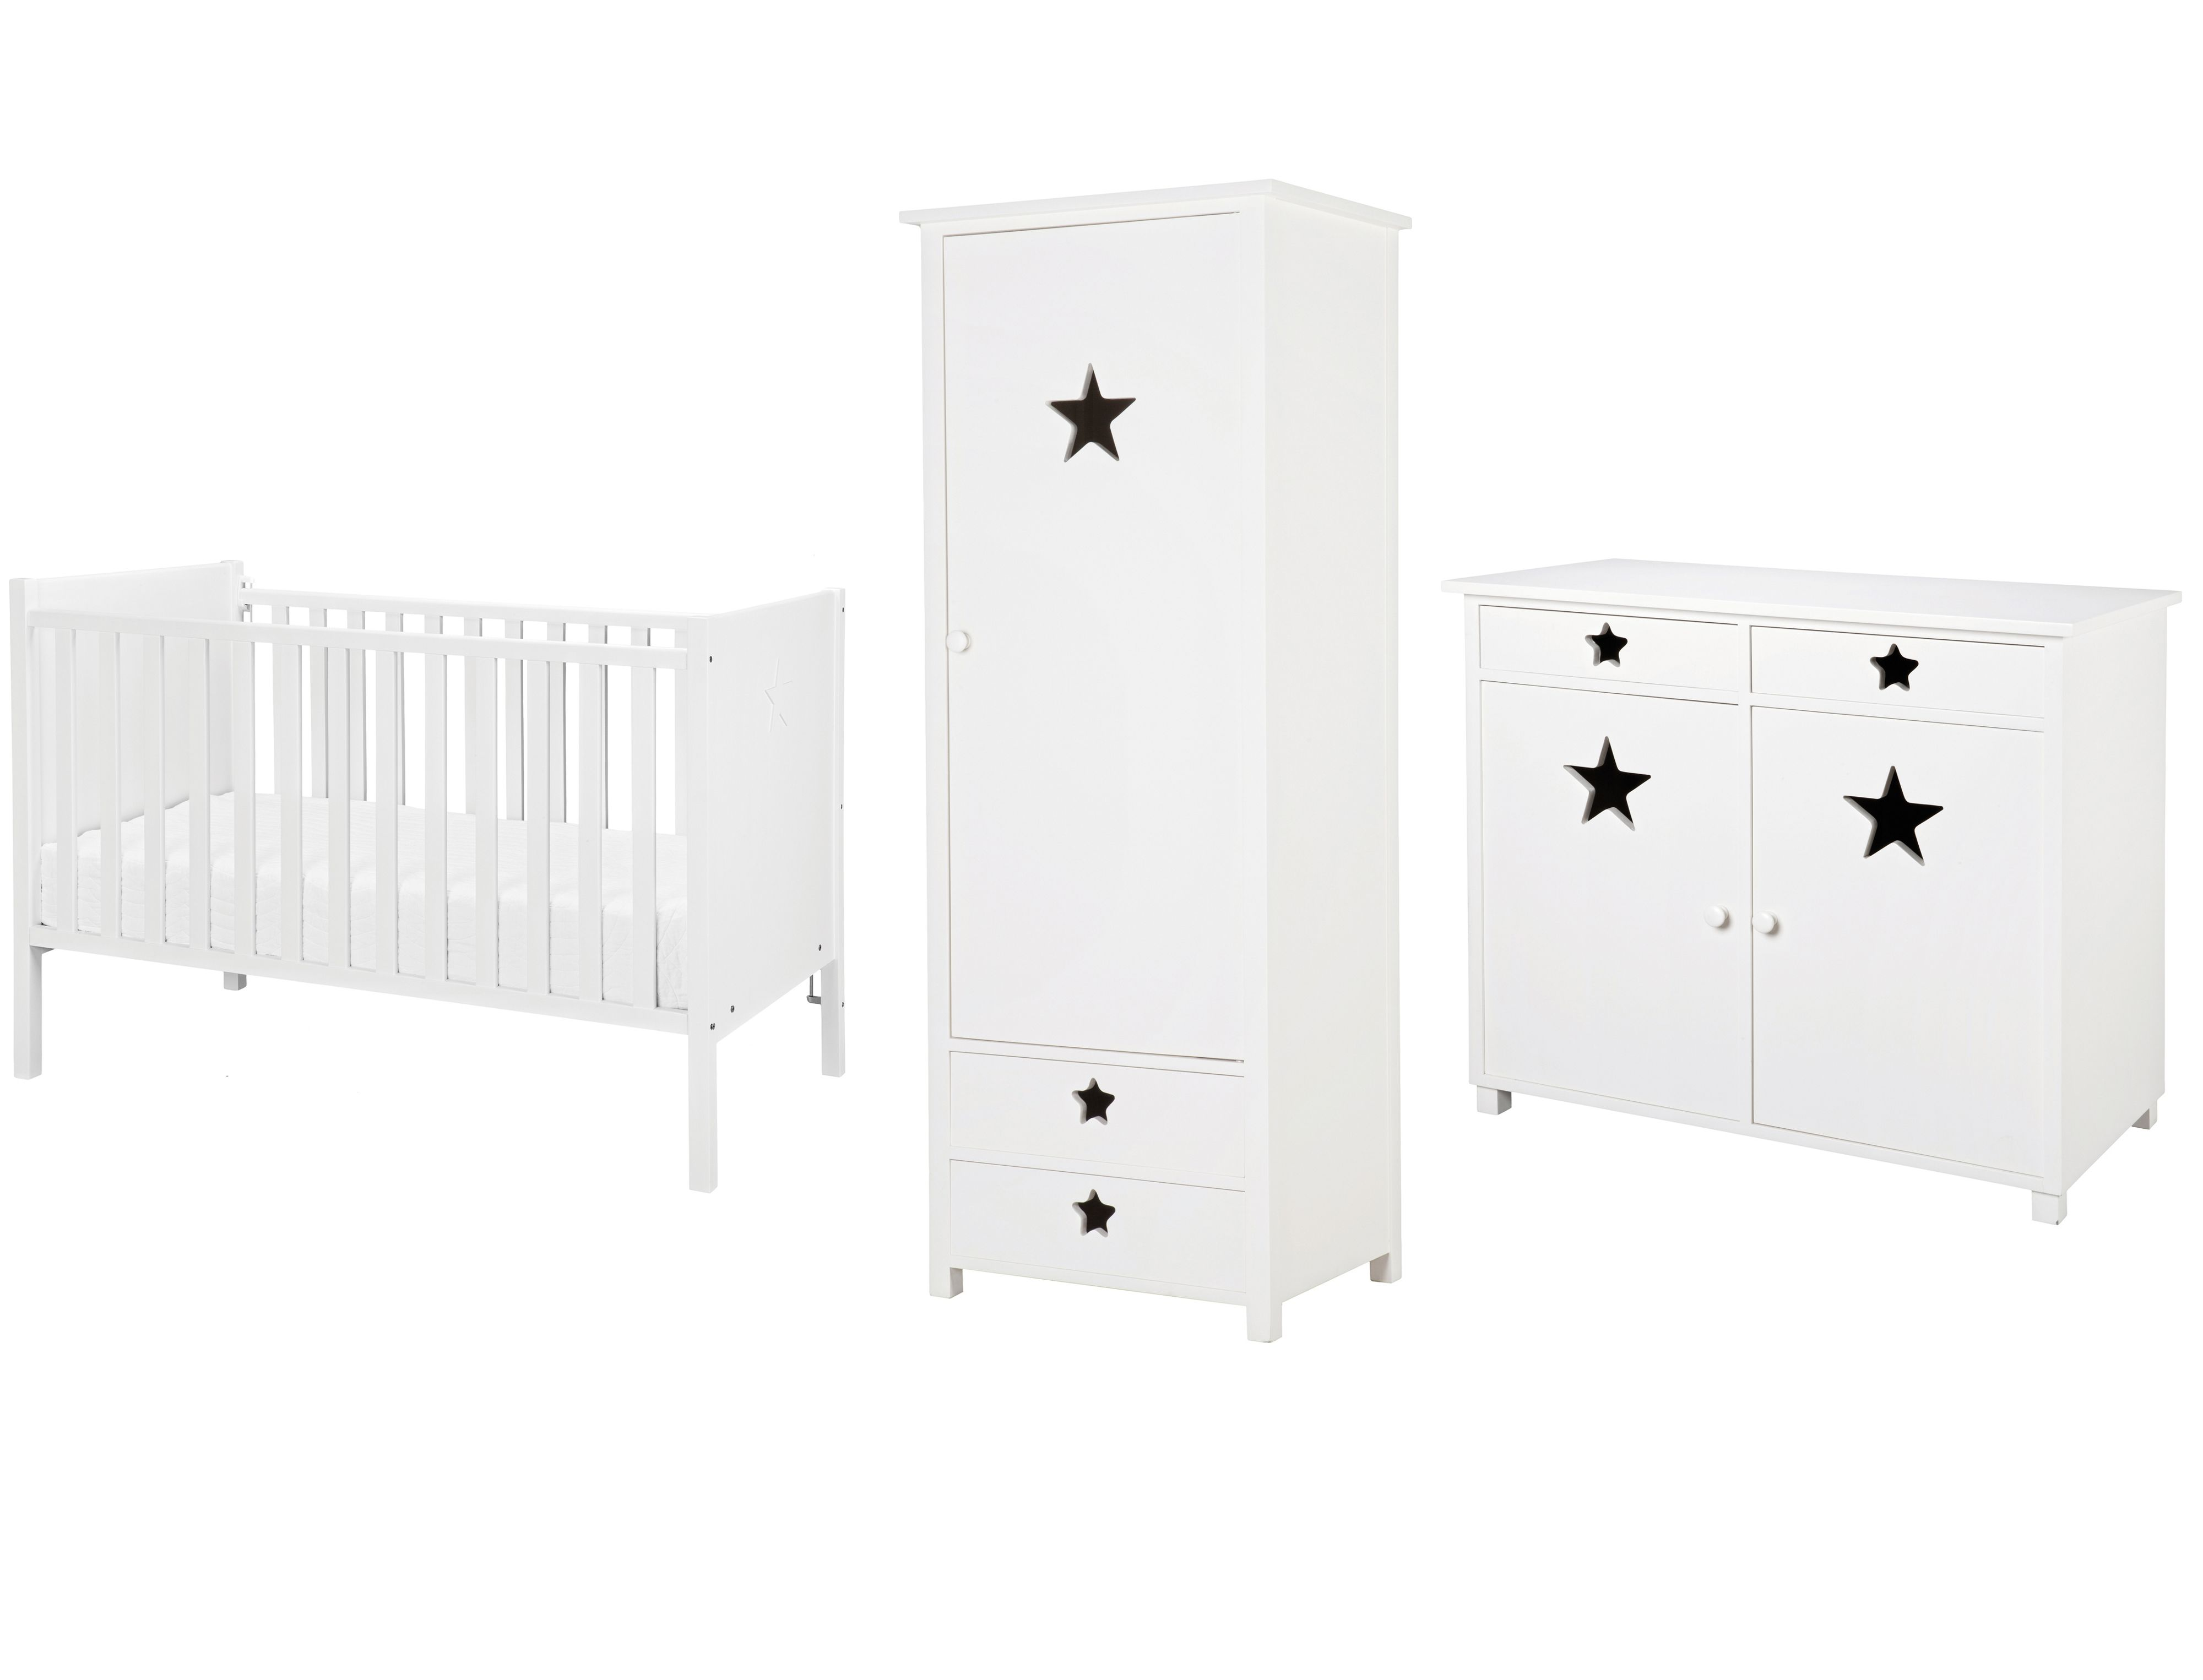 Star Nursery Furniture Set